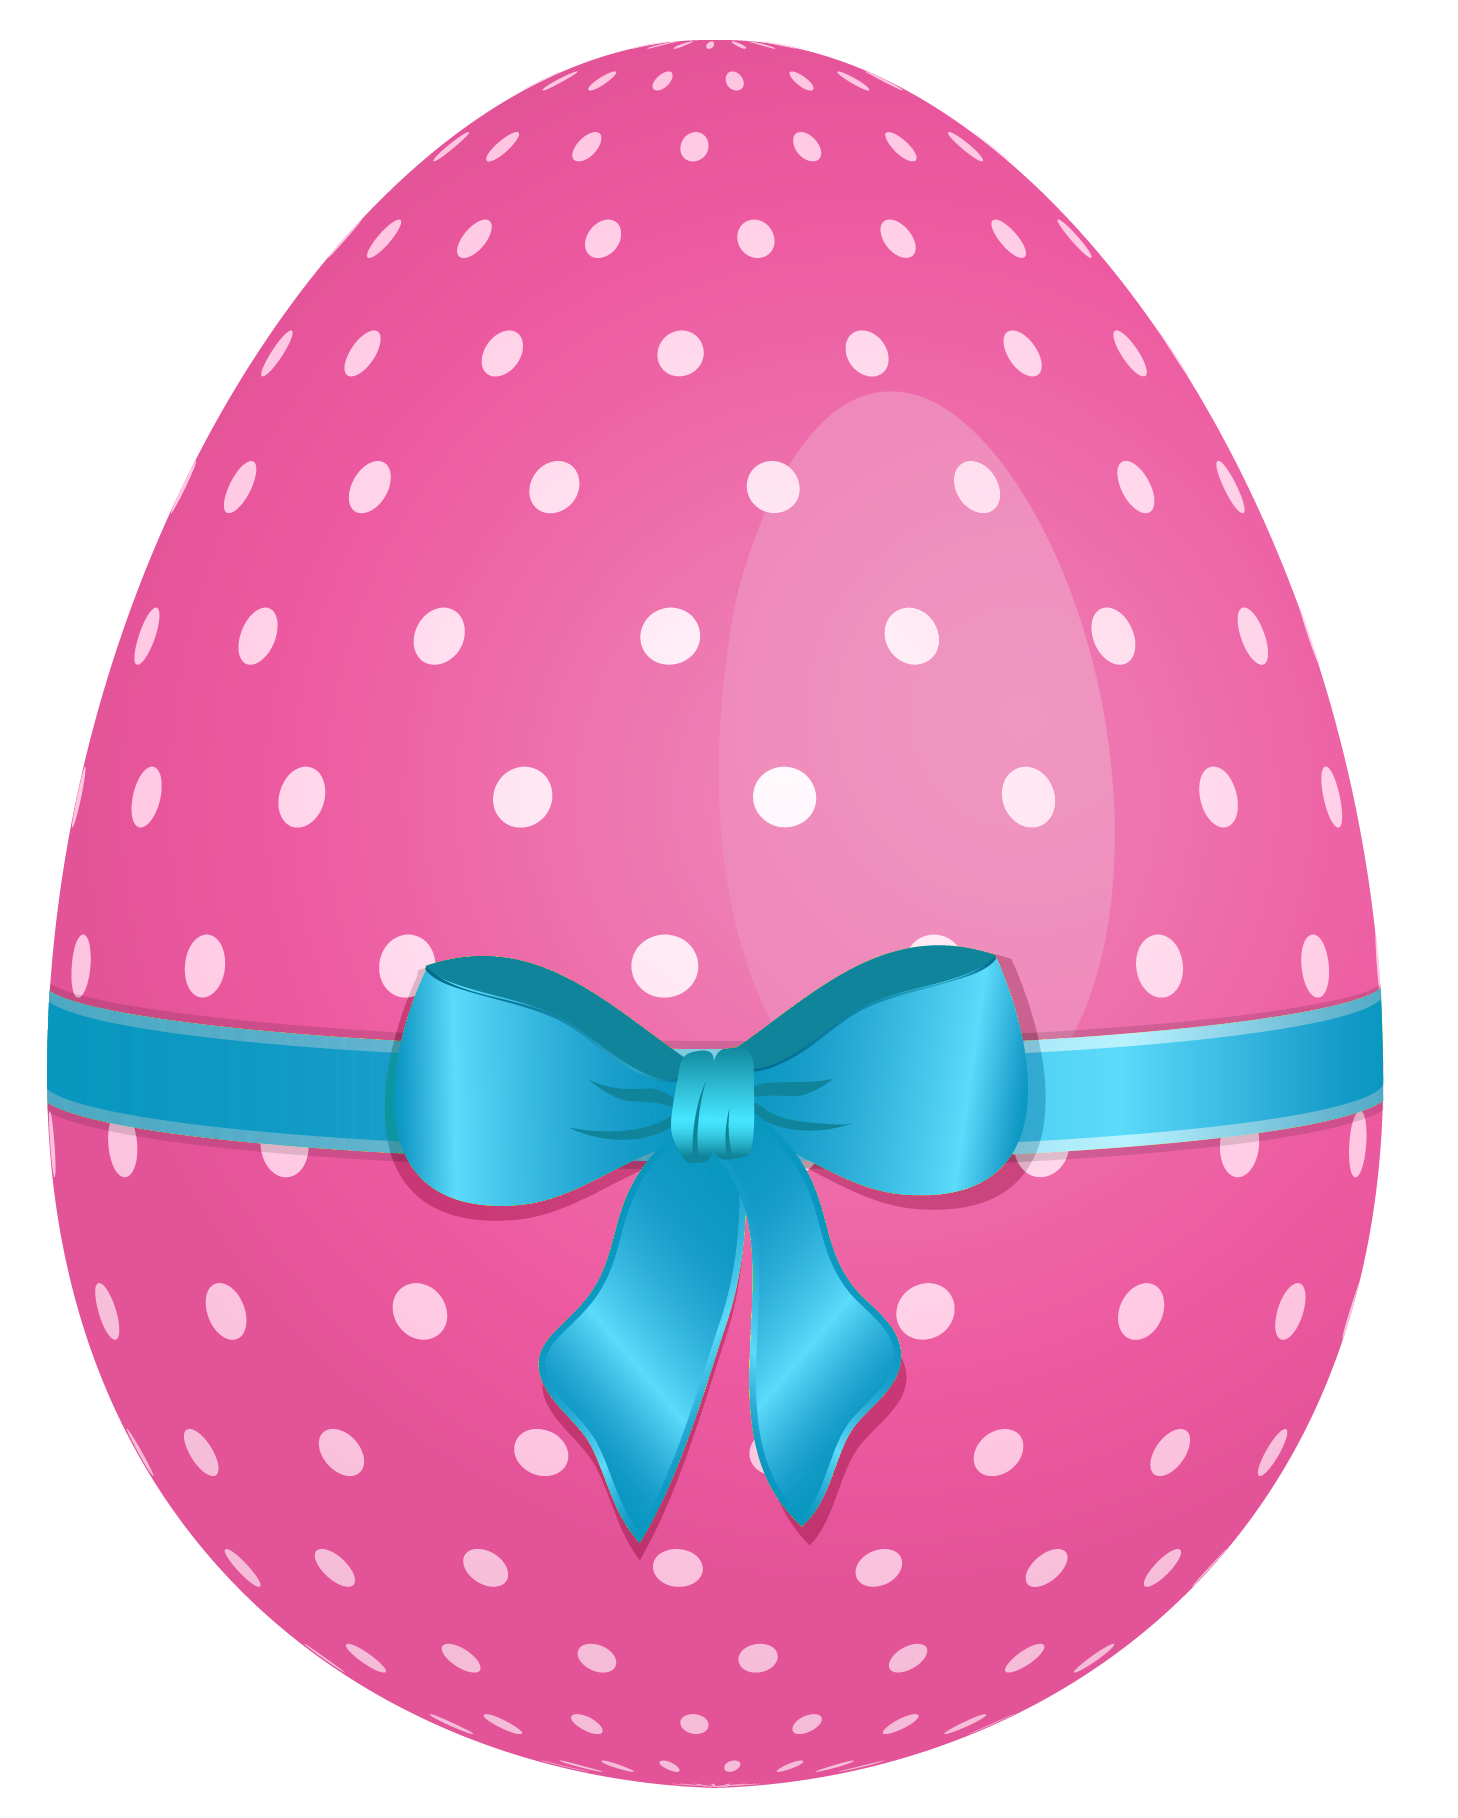 Eggs vector one plastic. The easter bunny has